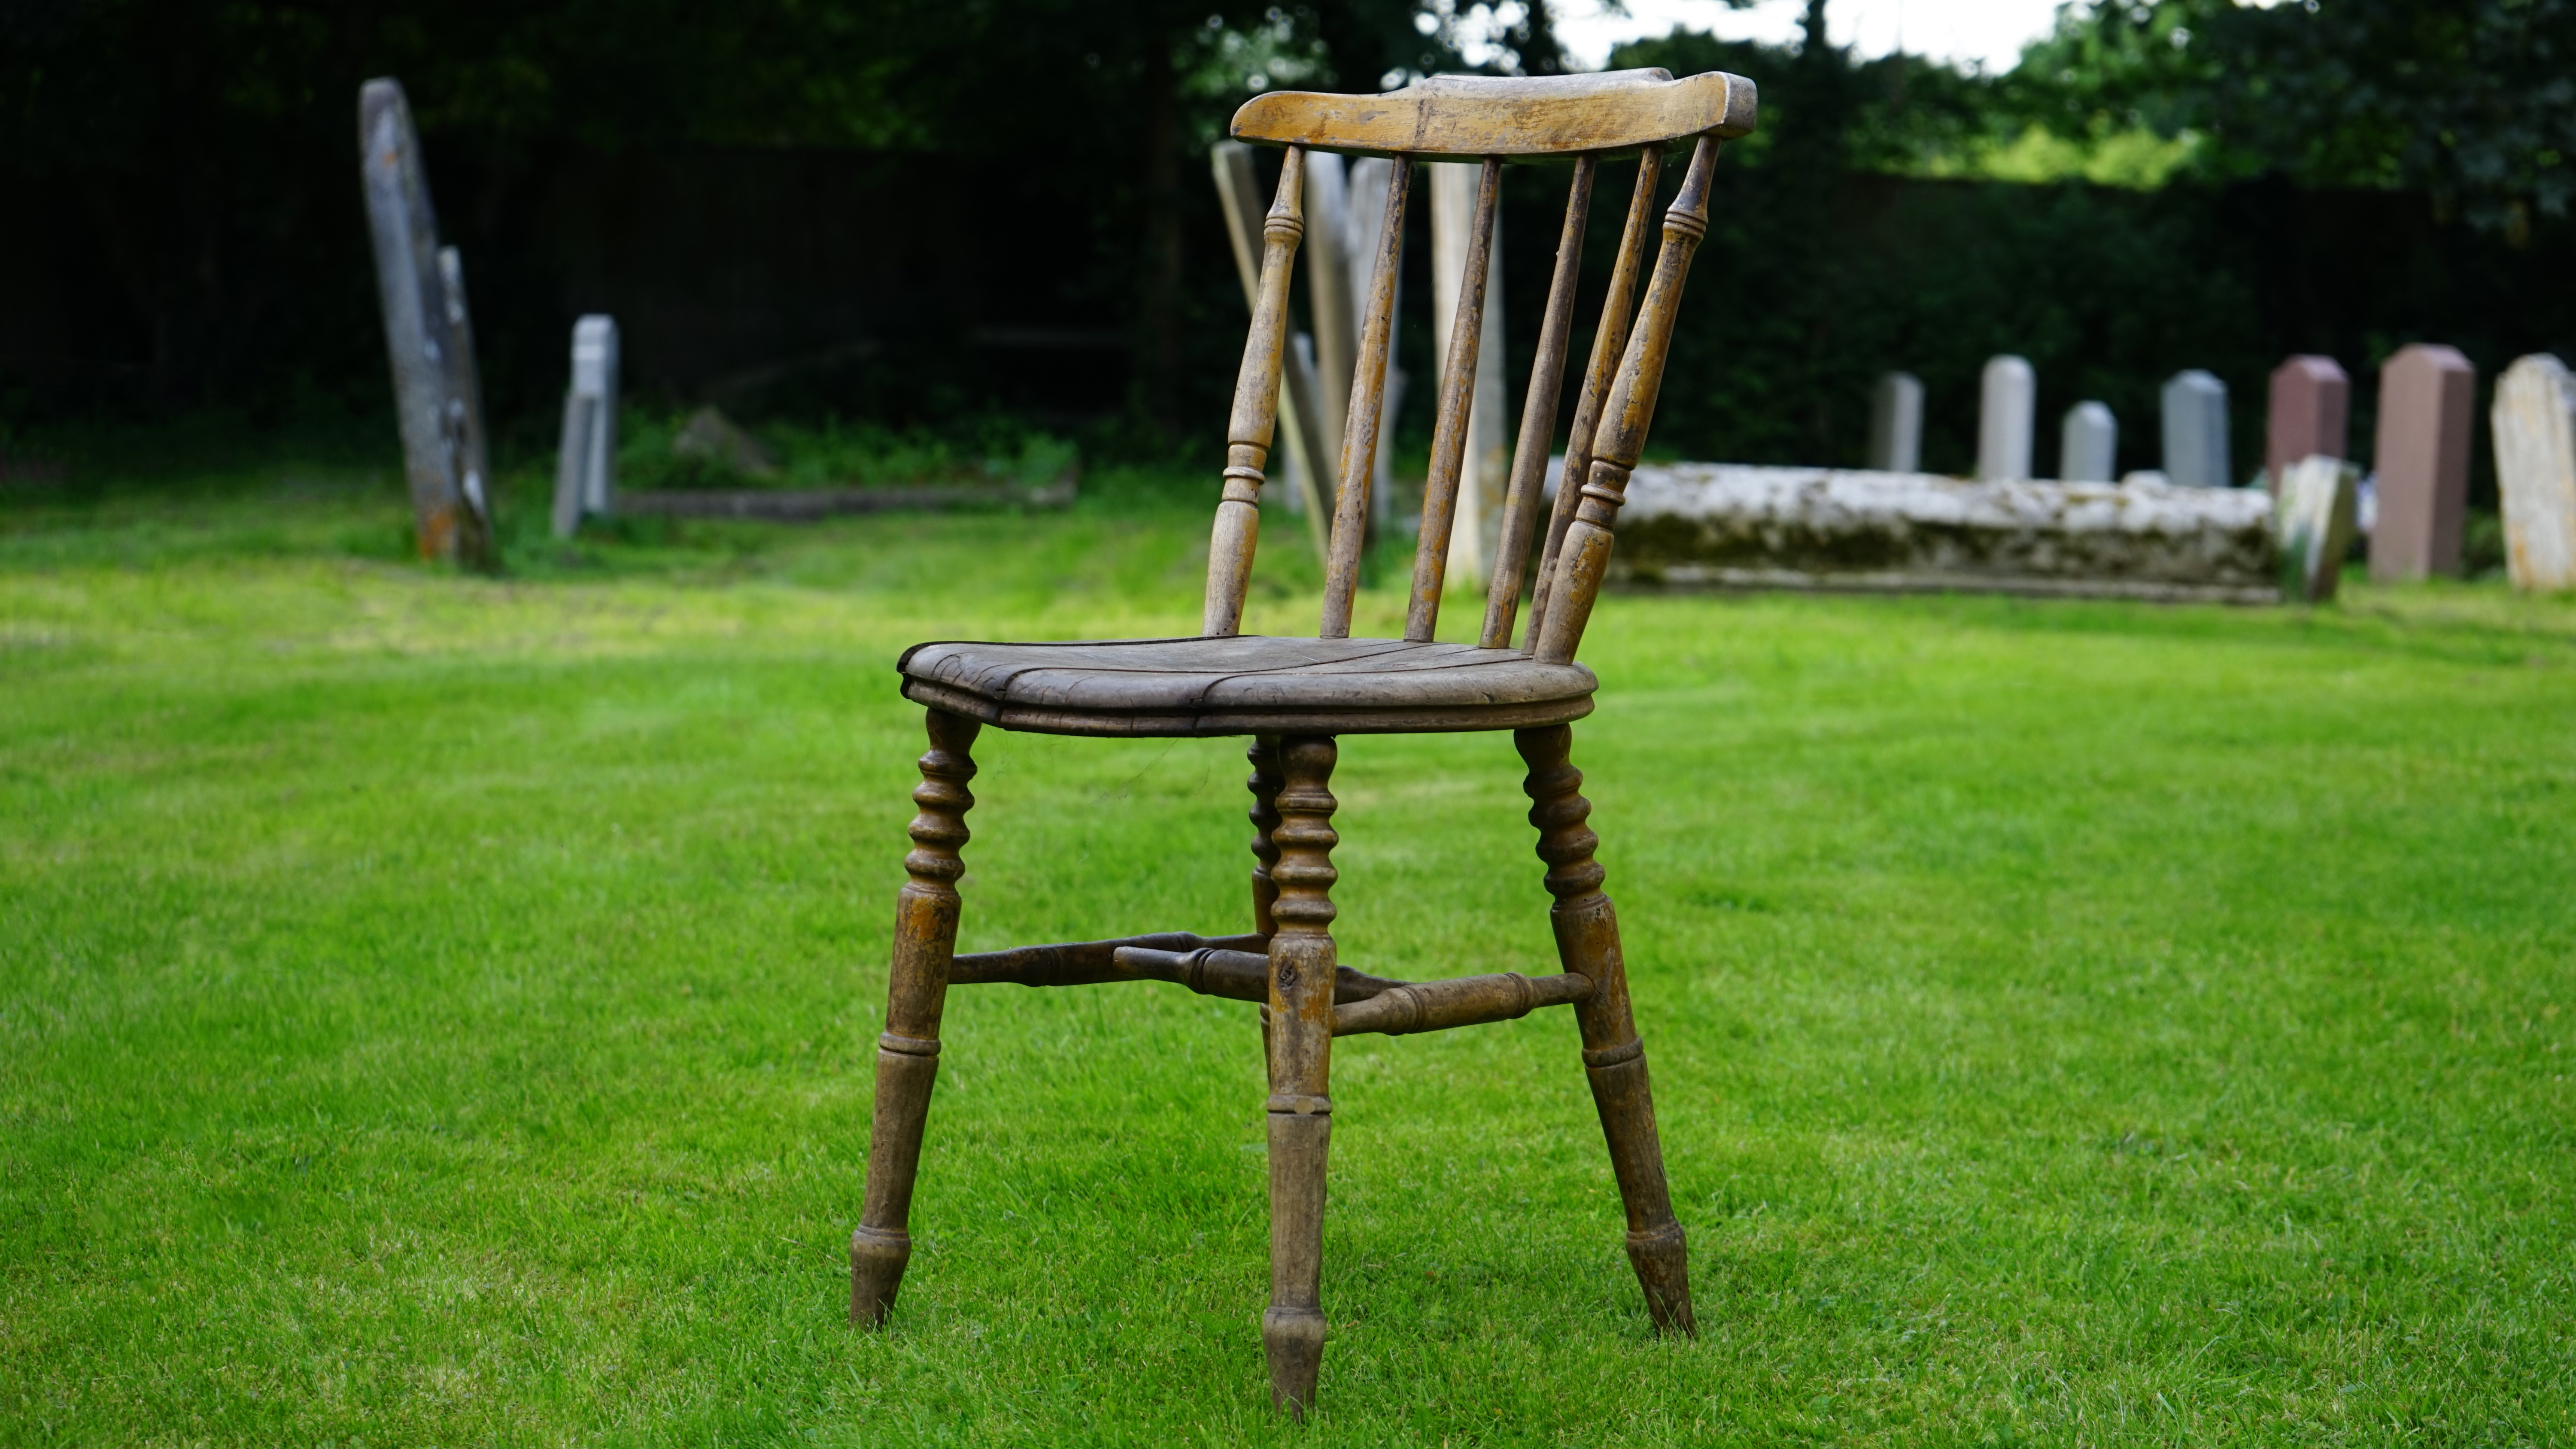 Free stock photo of cemetery chair countryside